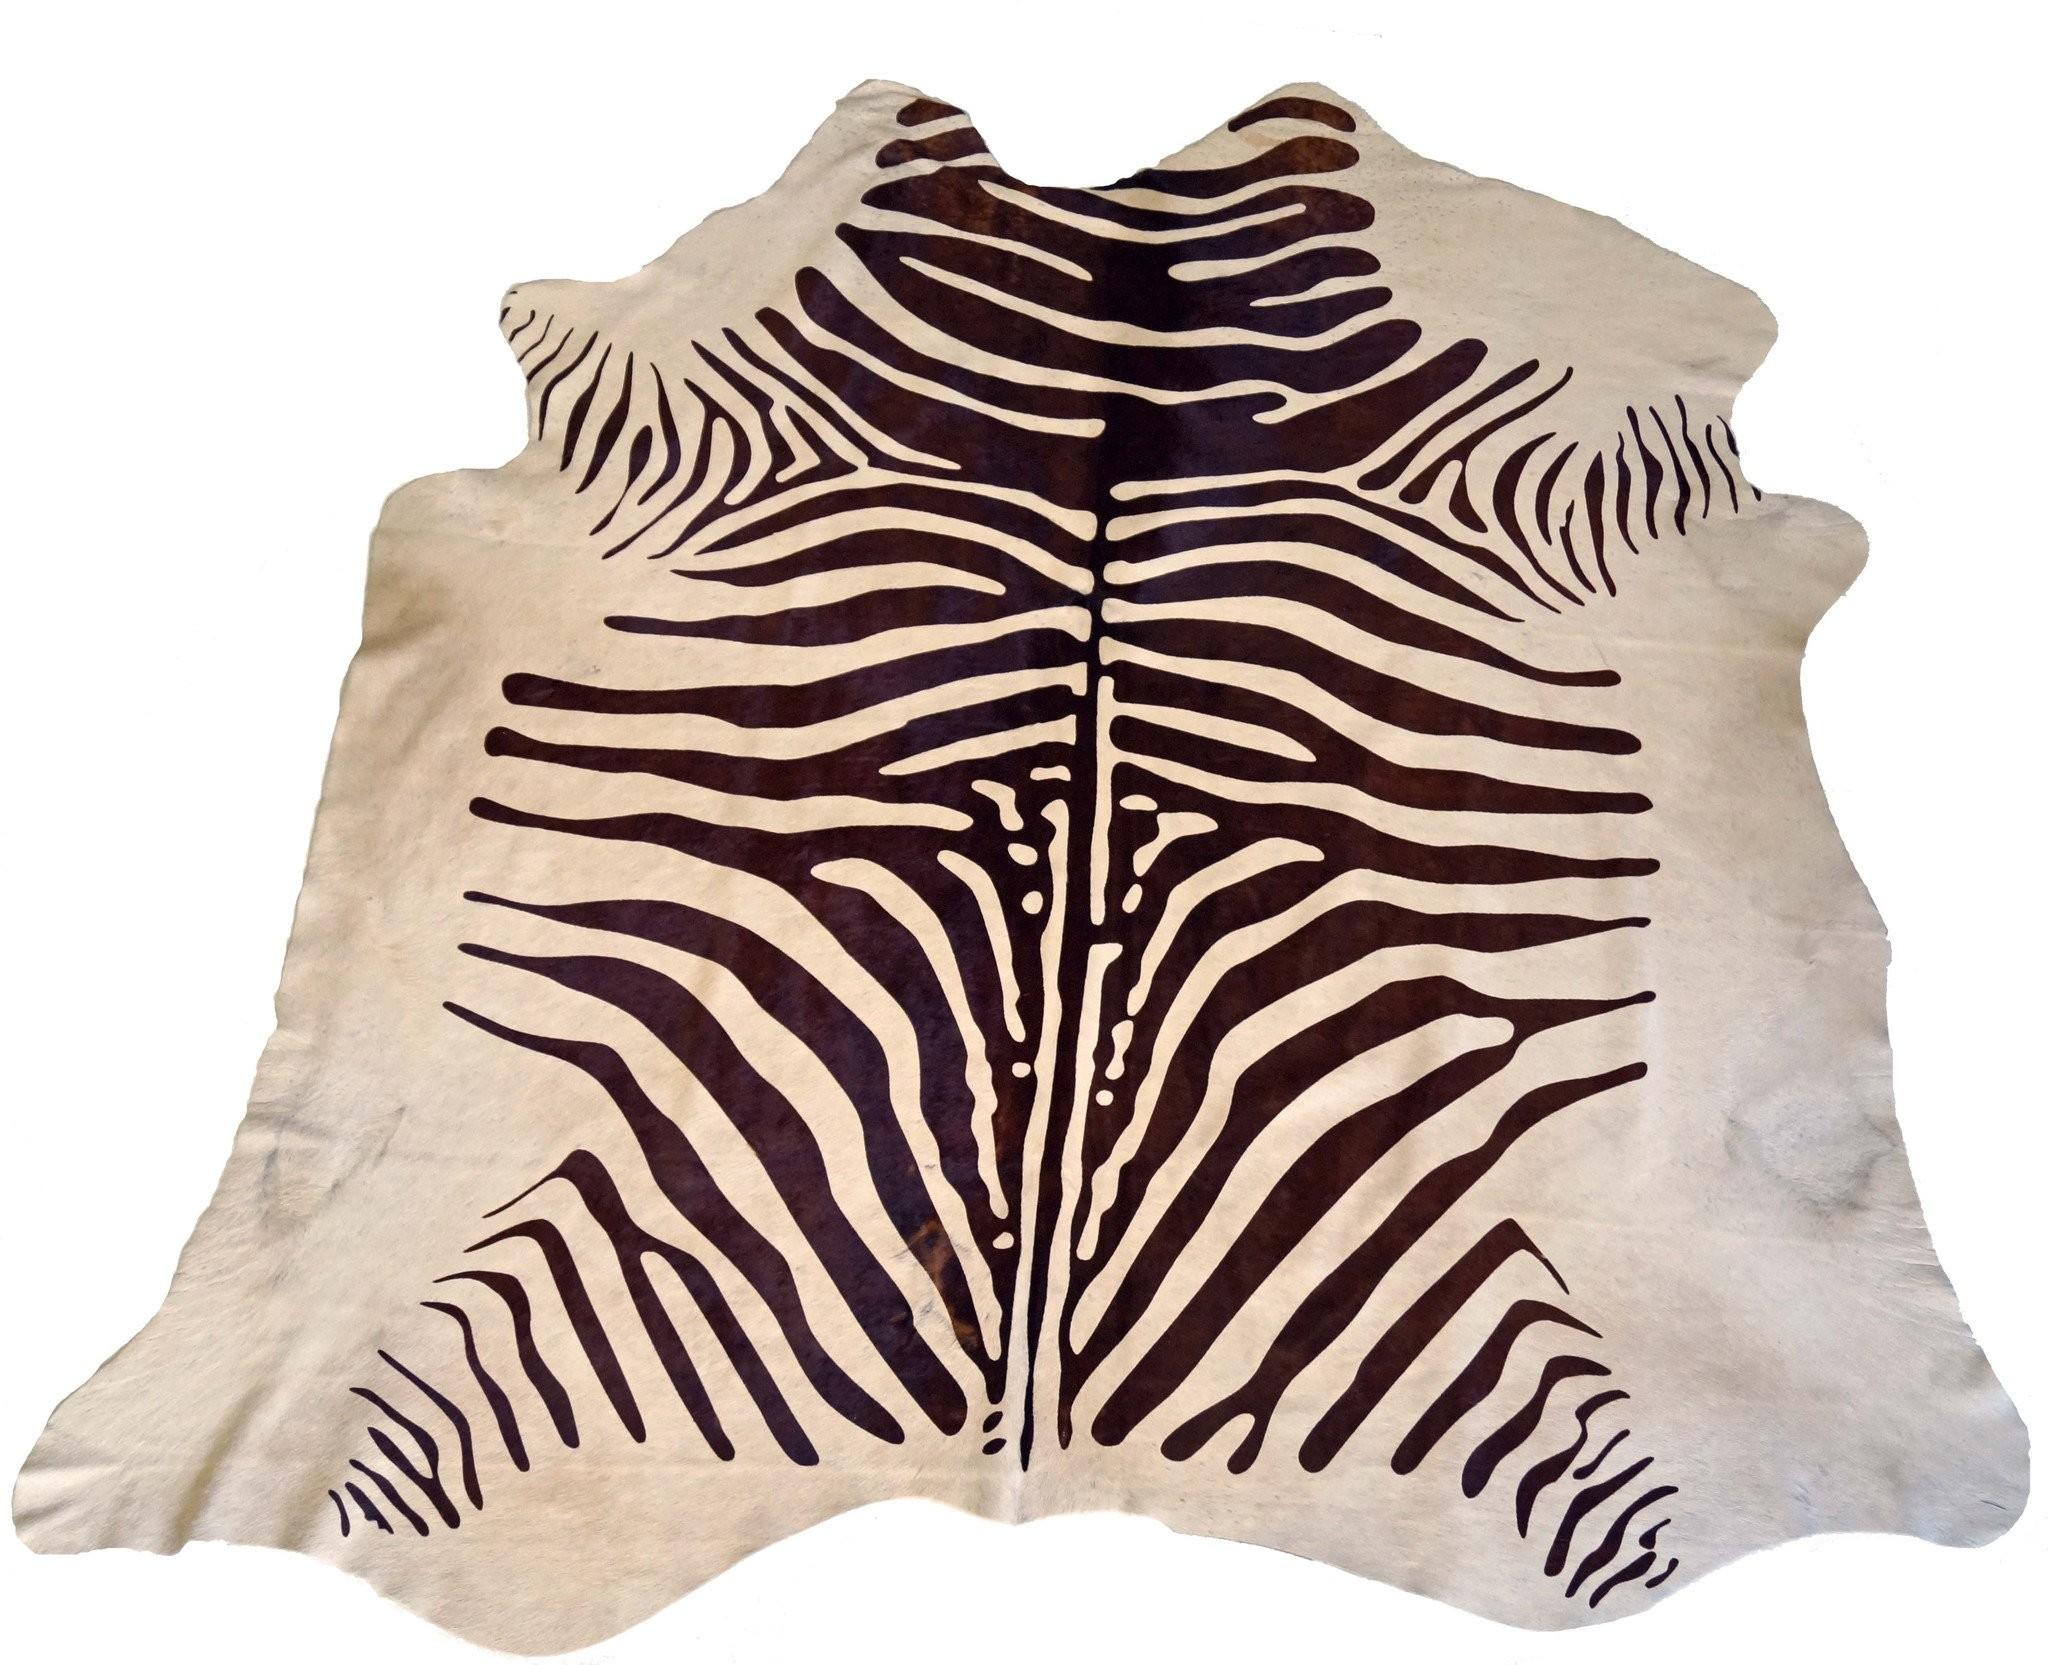 Brown White Zebra Cowhide Rug Design Hides